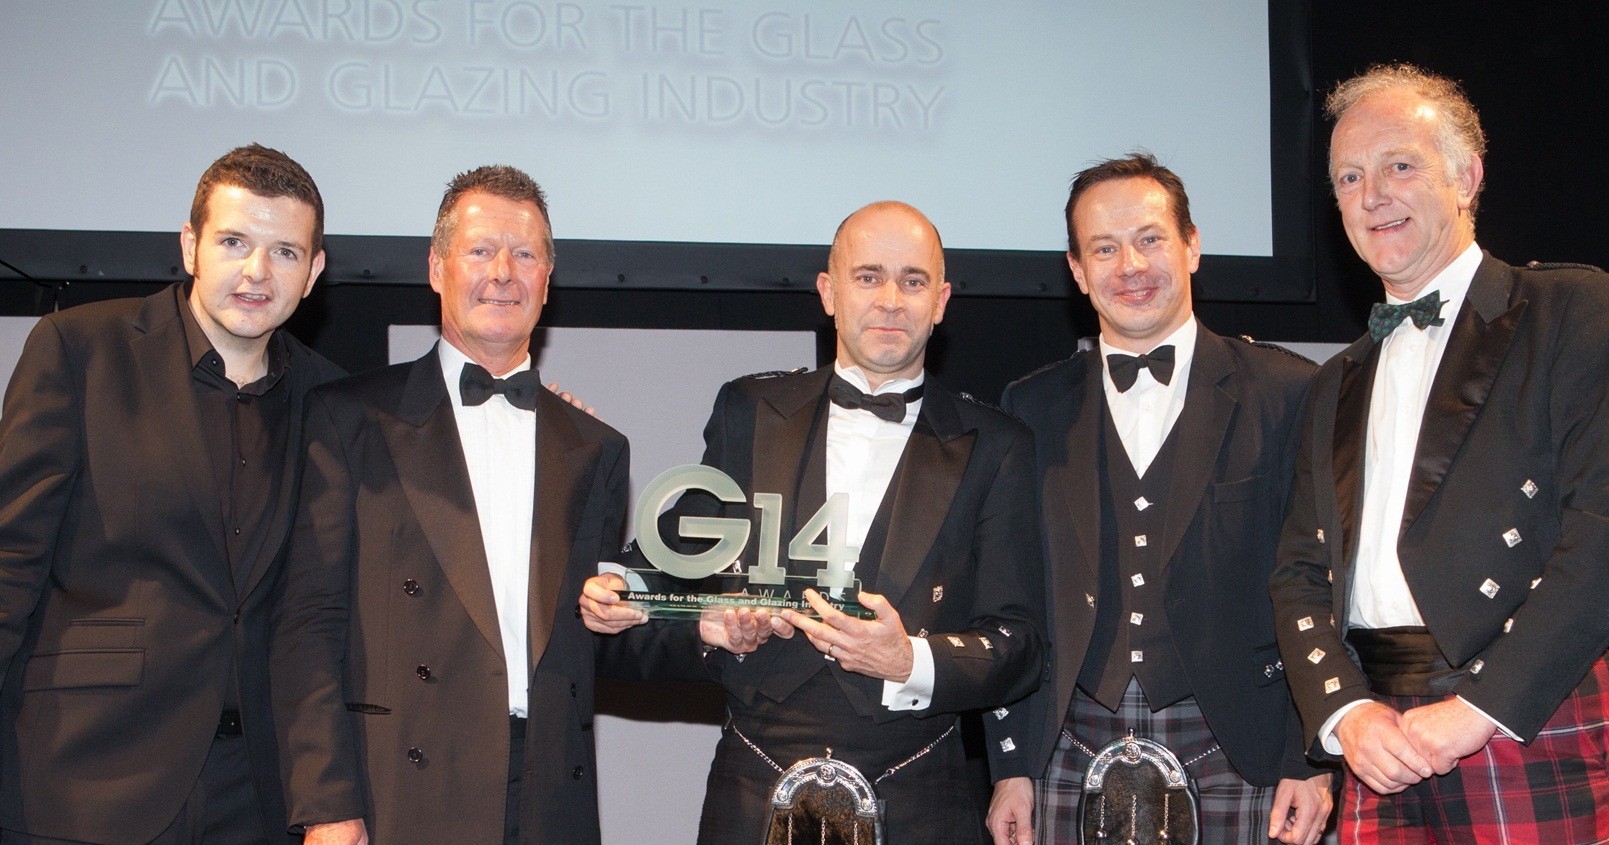 33935_33935_Brian-Baker-Presents-GGF-G14-Award-Glass-Company-of-the-Year-Ravensby-Glass.jpg